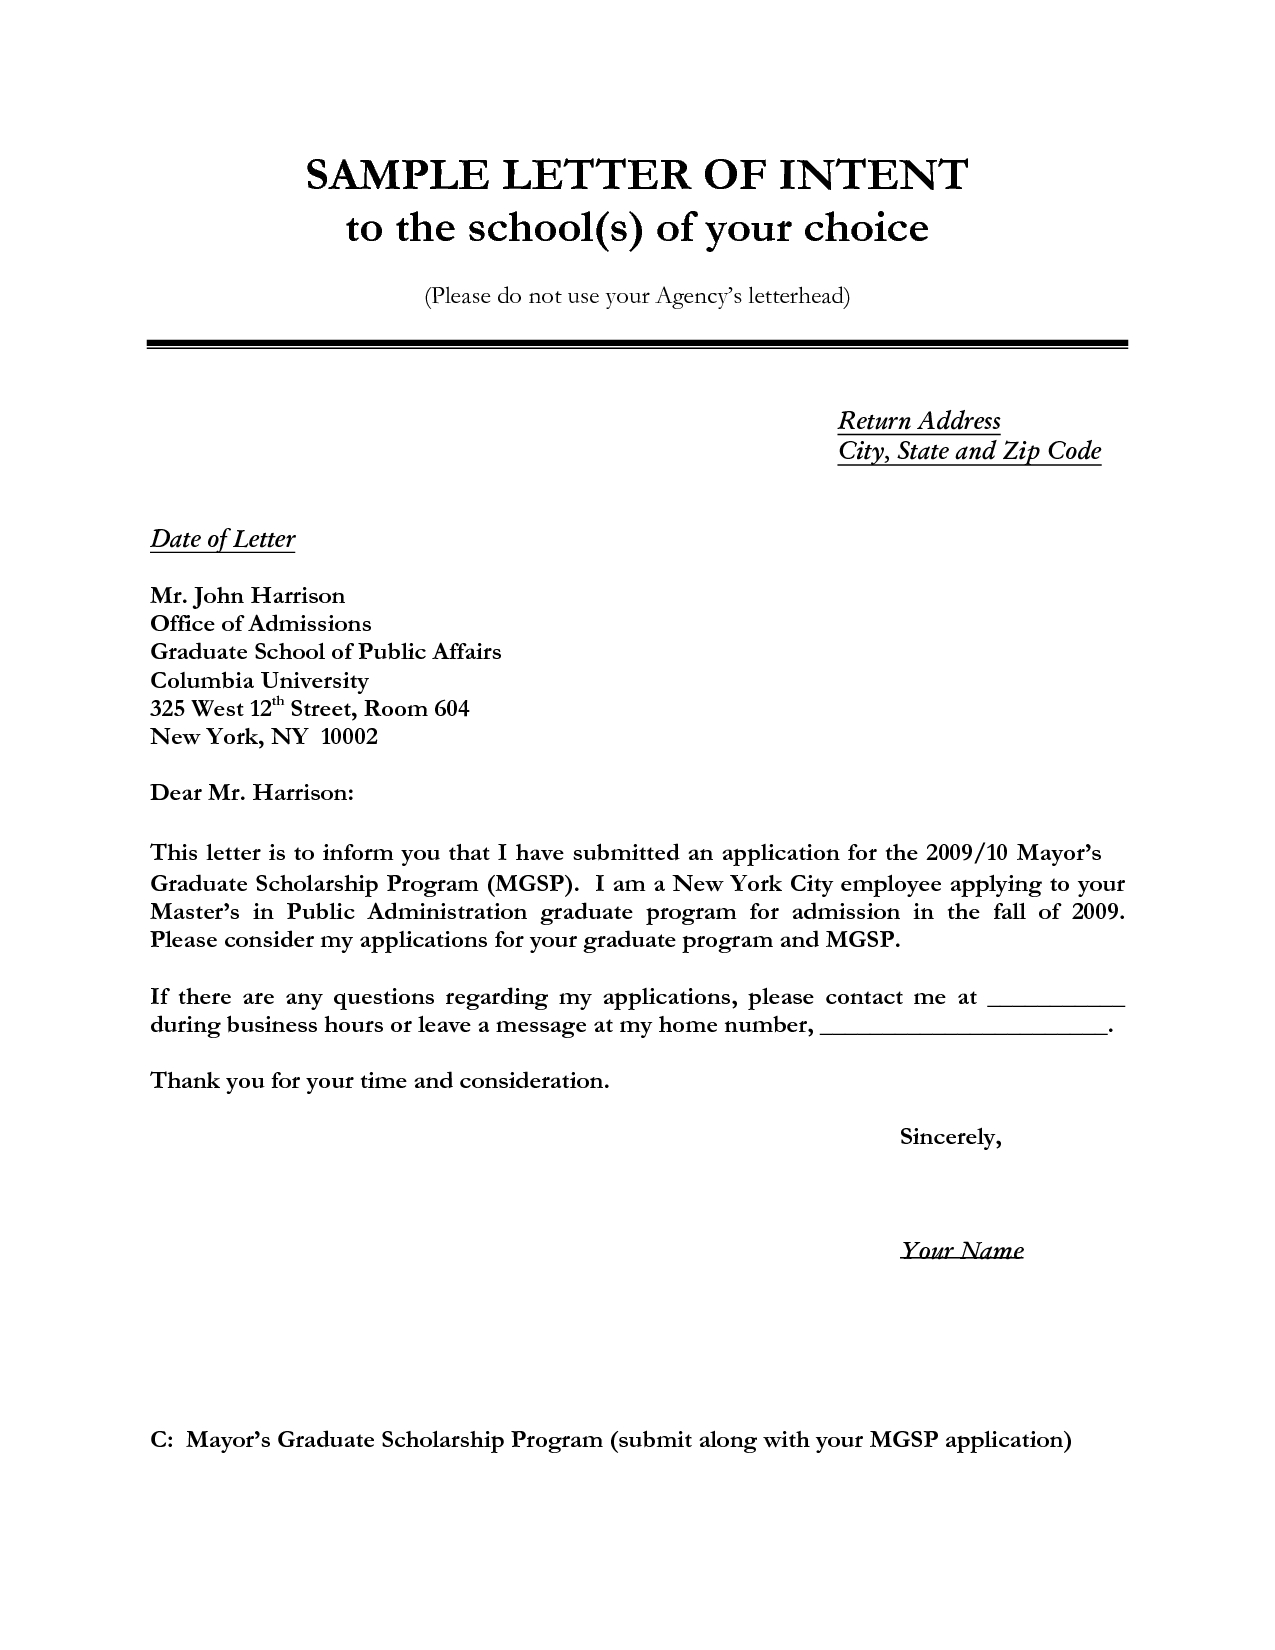 letter of intent to sell business template example-Letter of intent sample 7-q